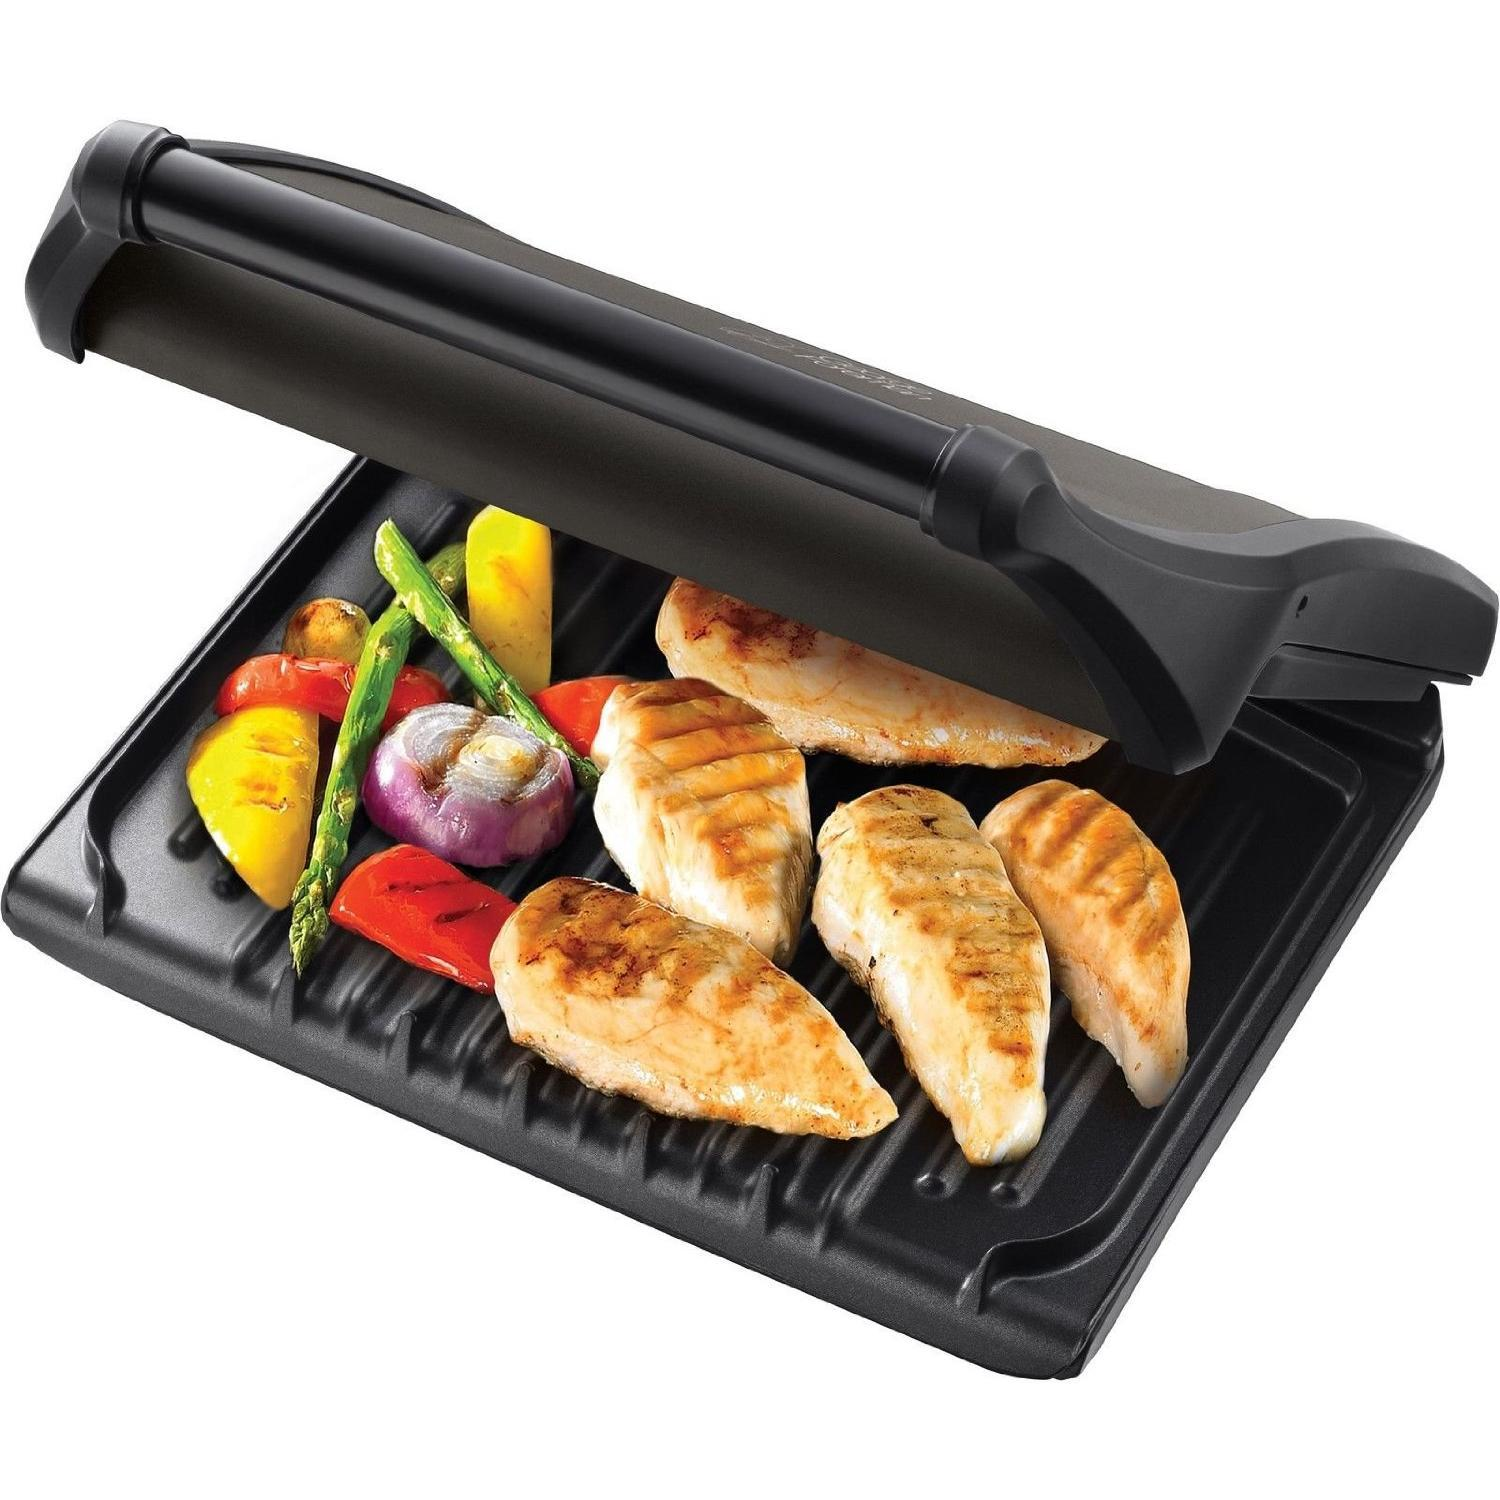 Grill - George Foreman - 19933 - réducteur de graisse 7 portions